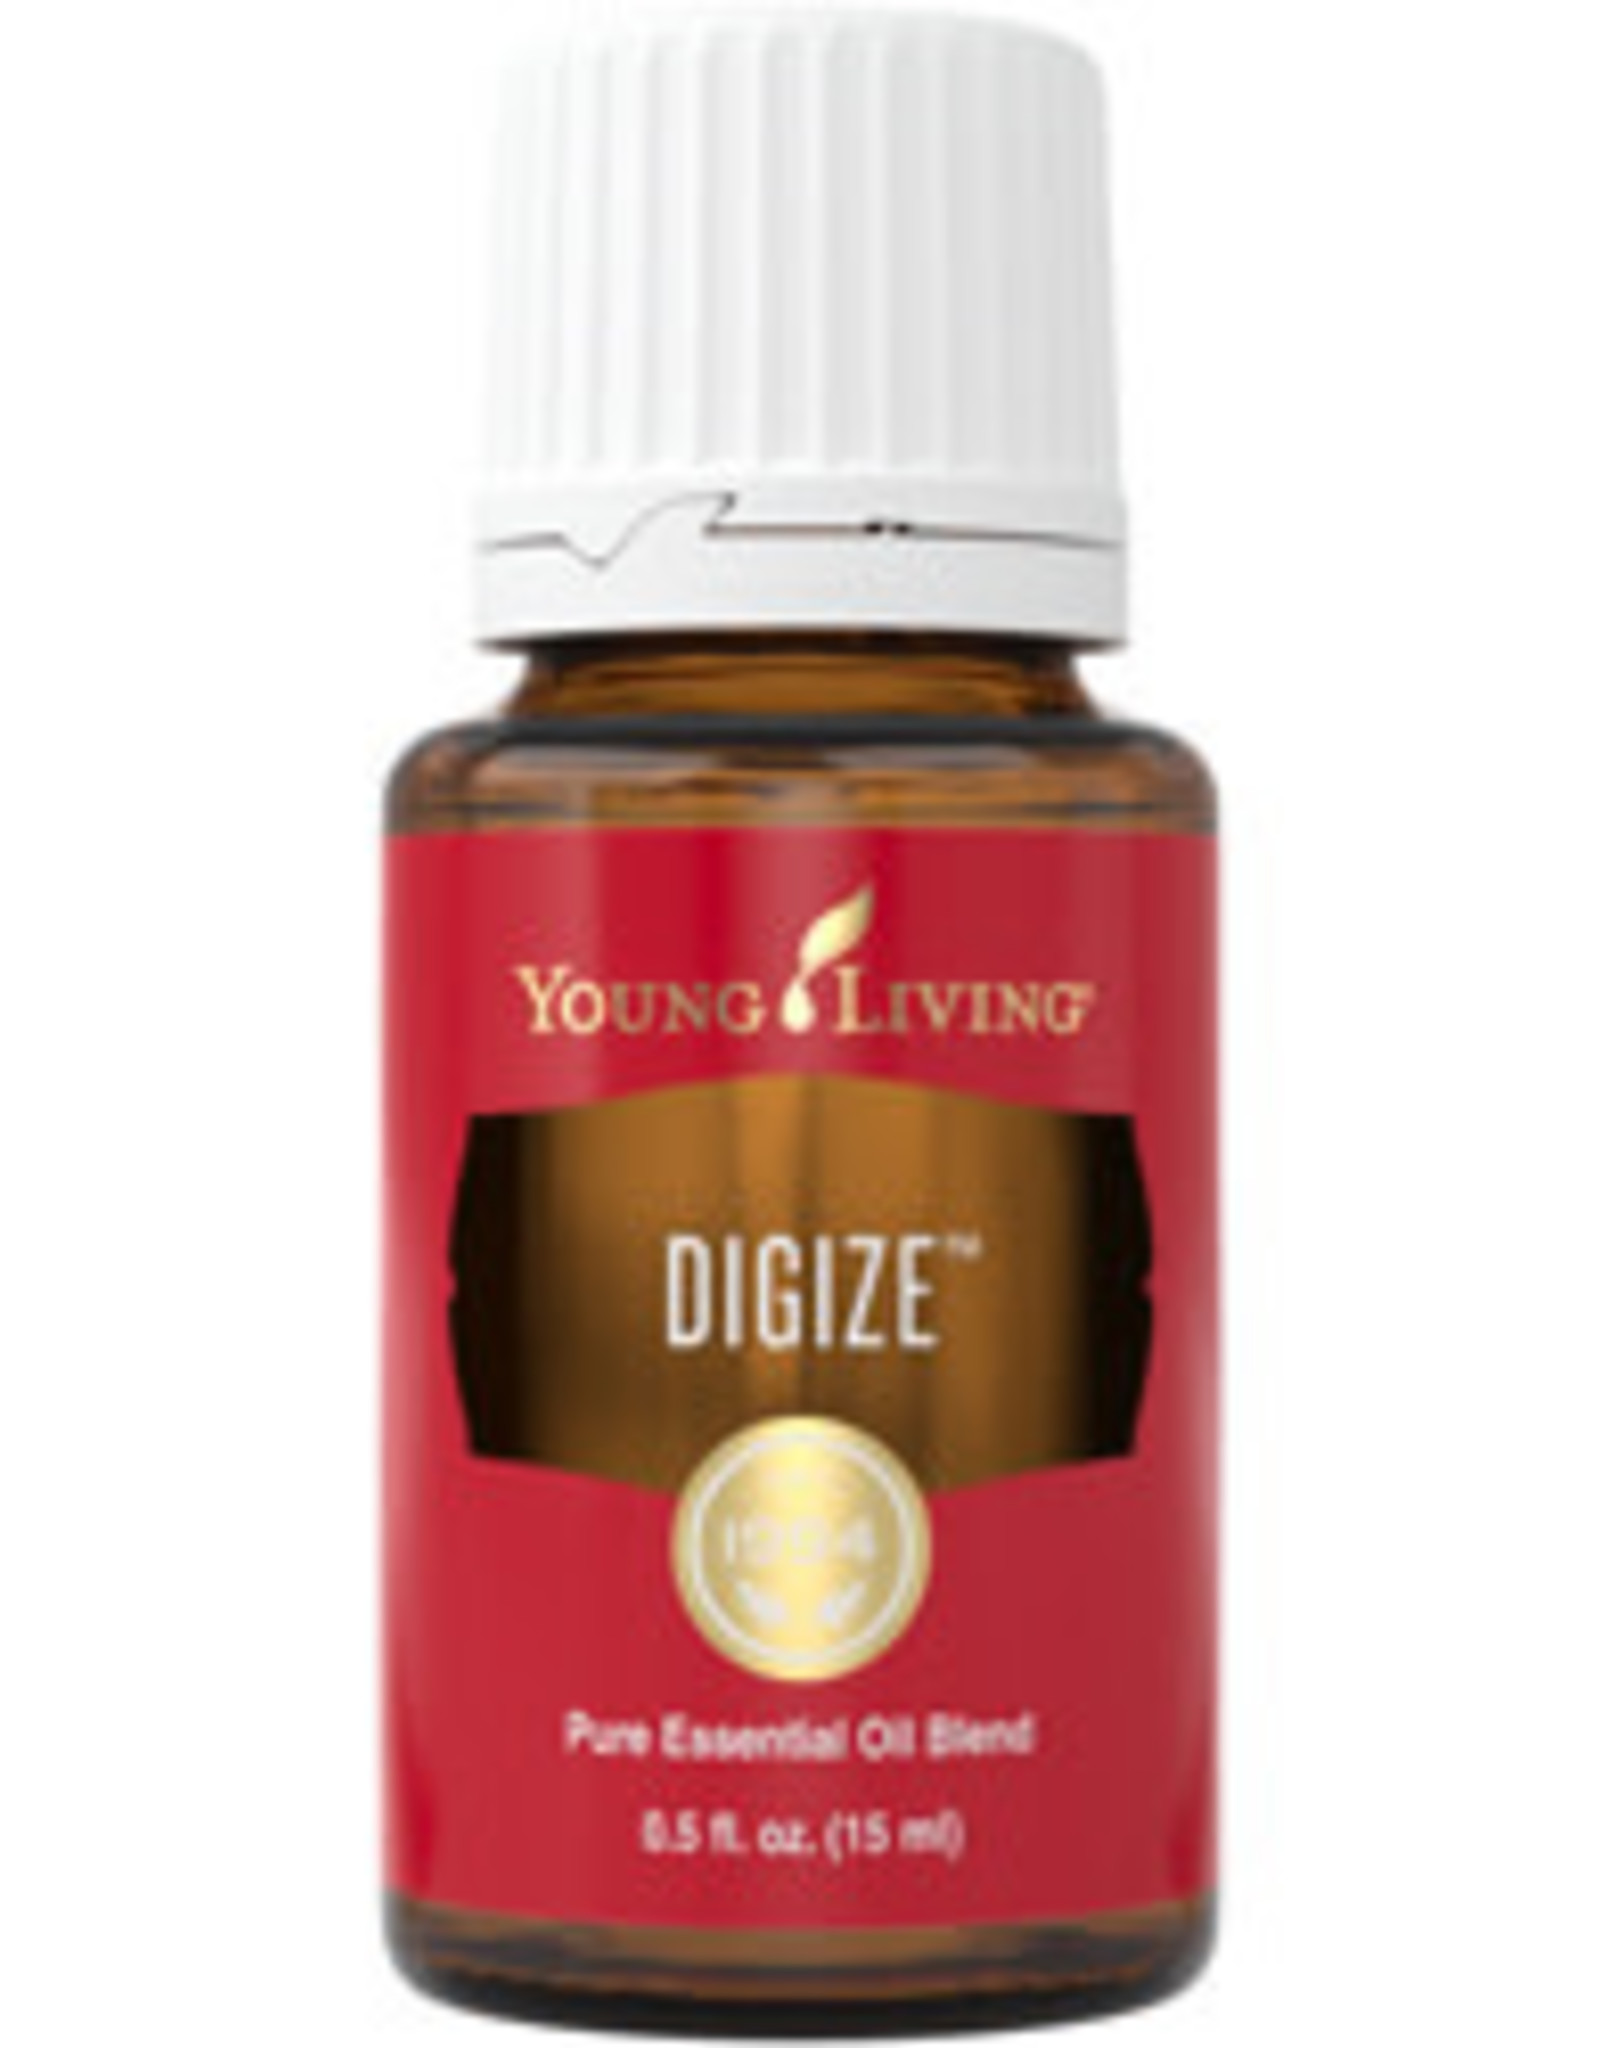 Young Living Digize Oil Blend